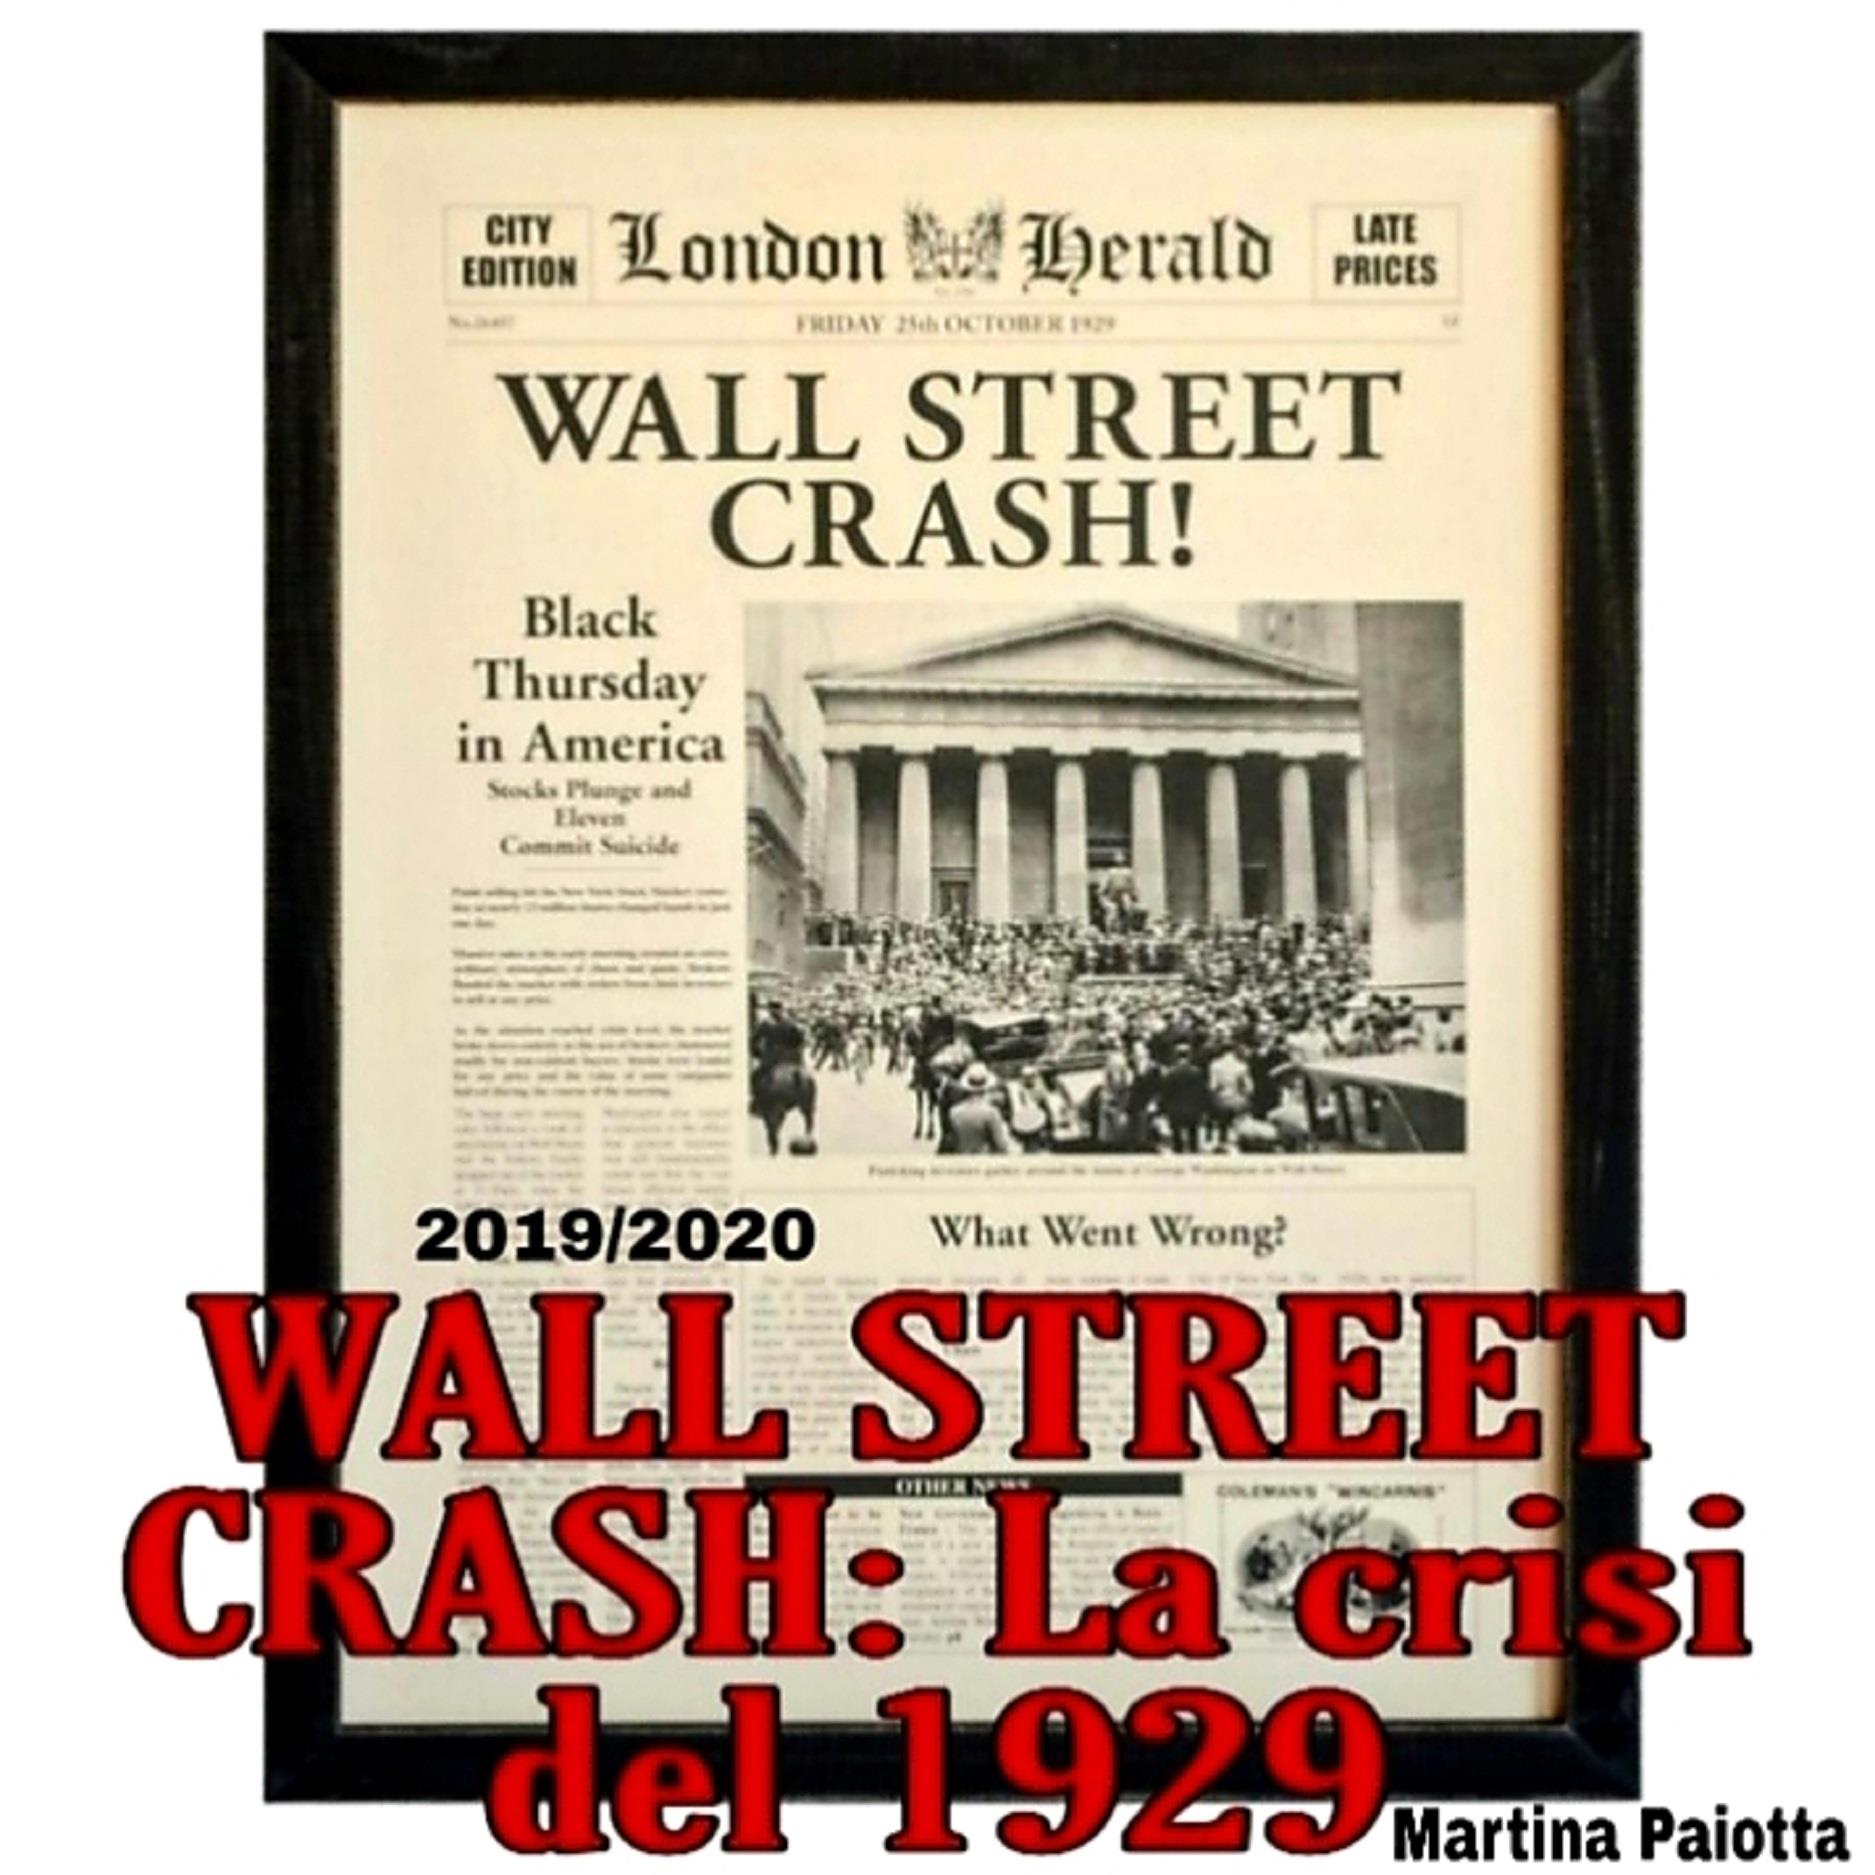 WALL STREET CRASH: La crisi del 1929